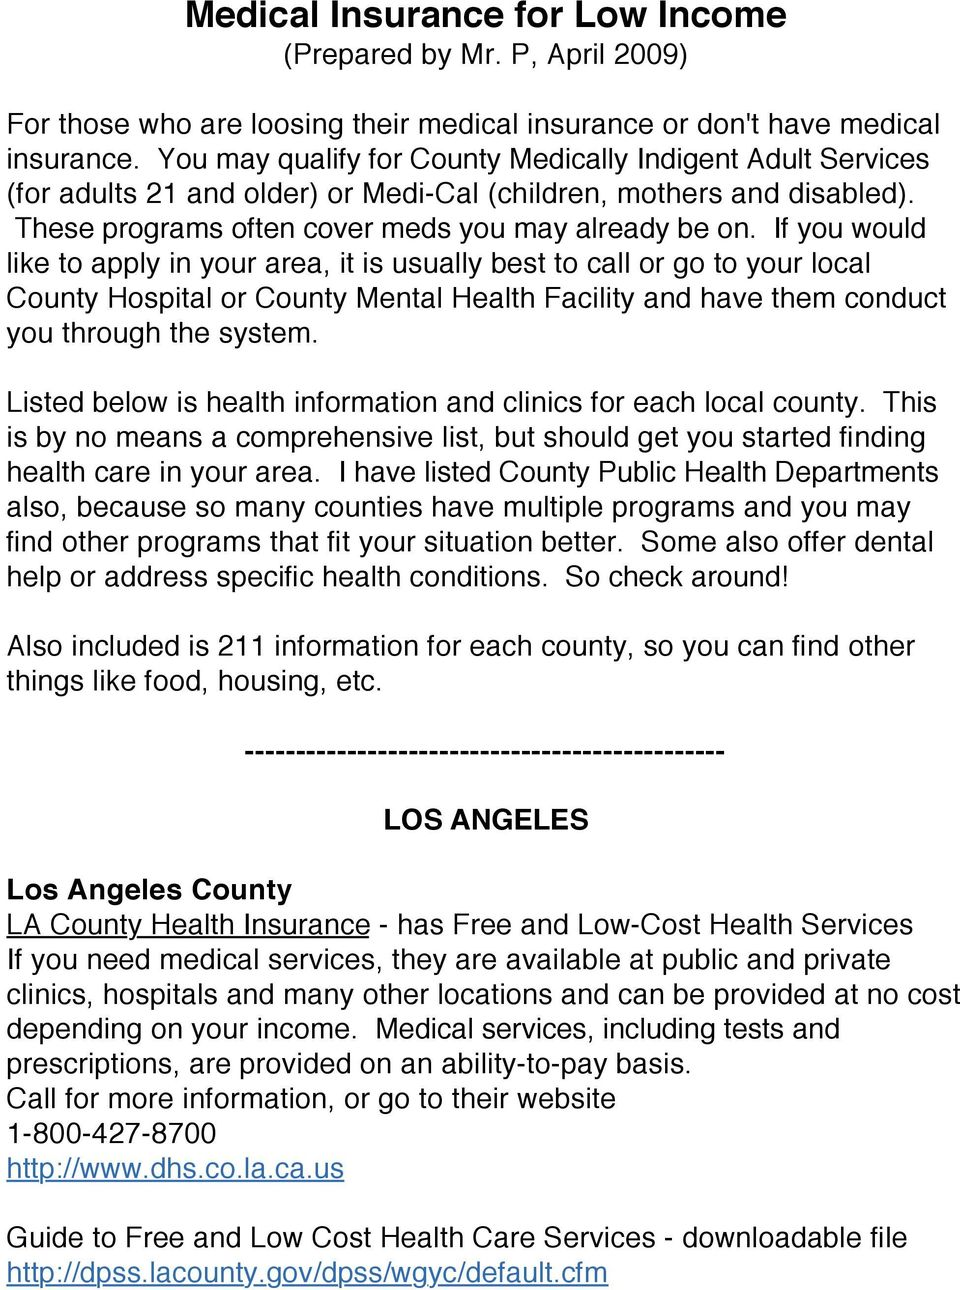 If you would like to apply in your area, it is usually best to call or go to your local County Hospital or County Mental Health Facility and have them conduct you through the system.